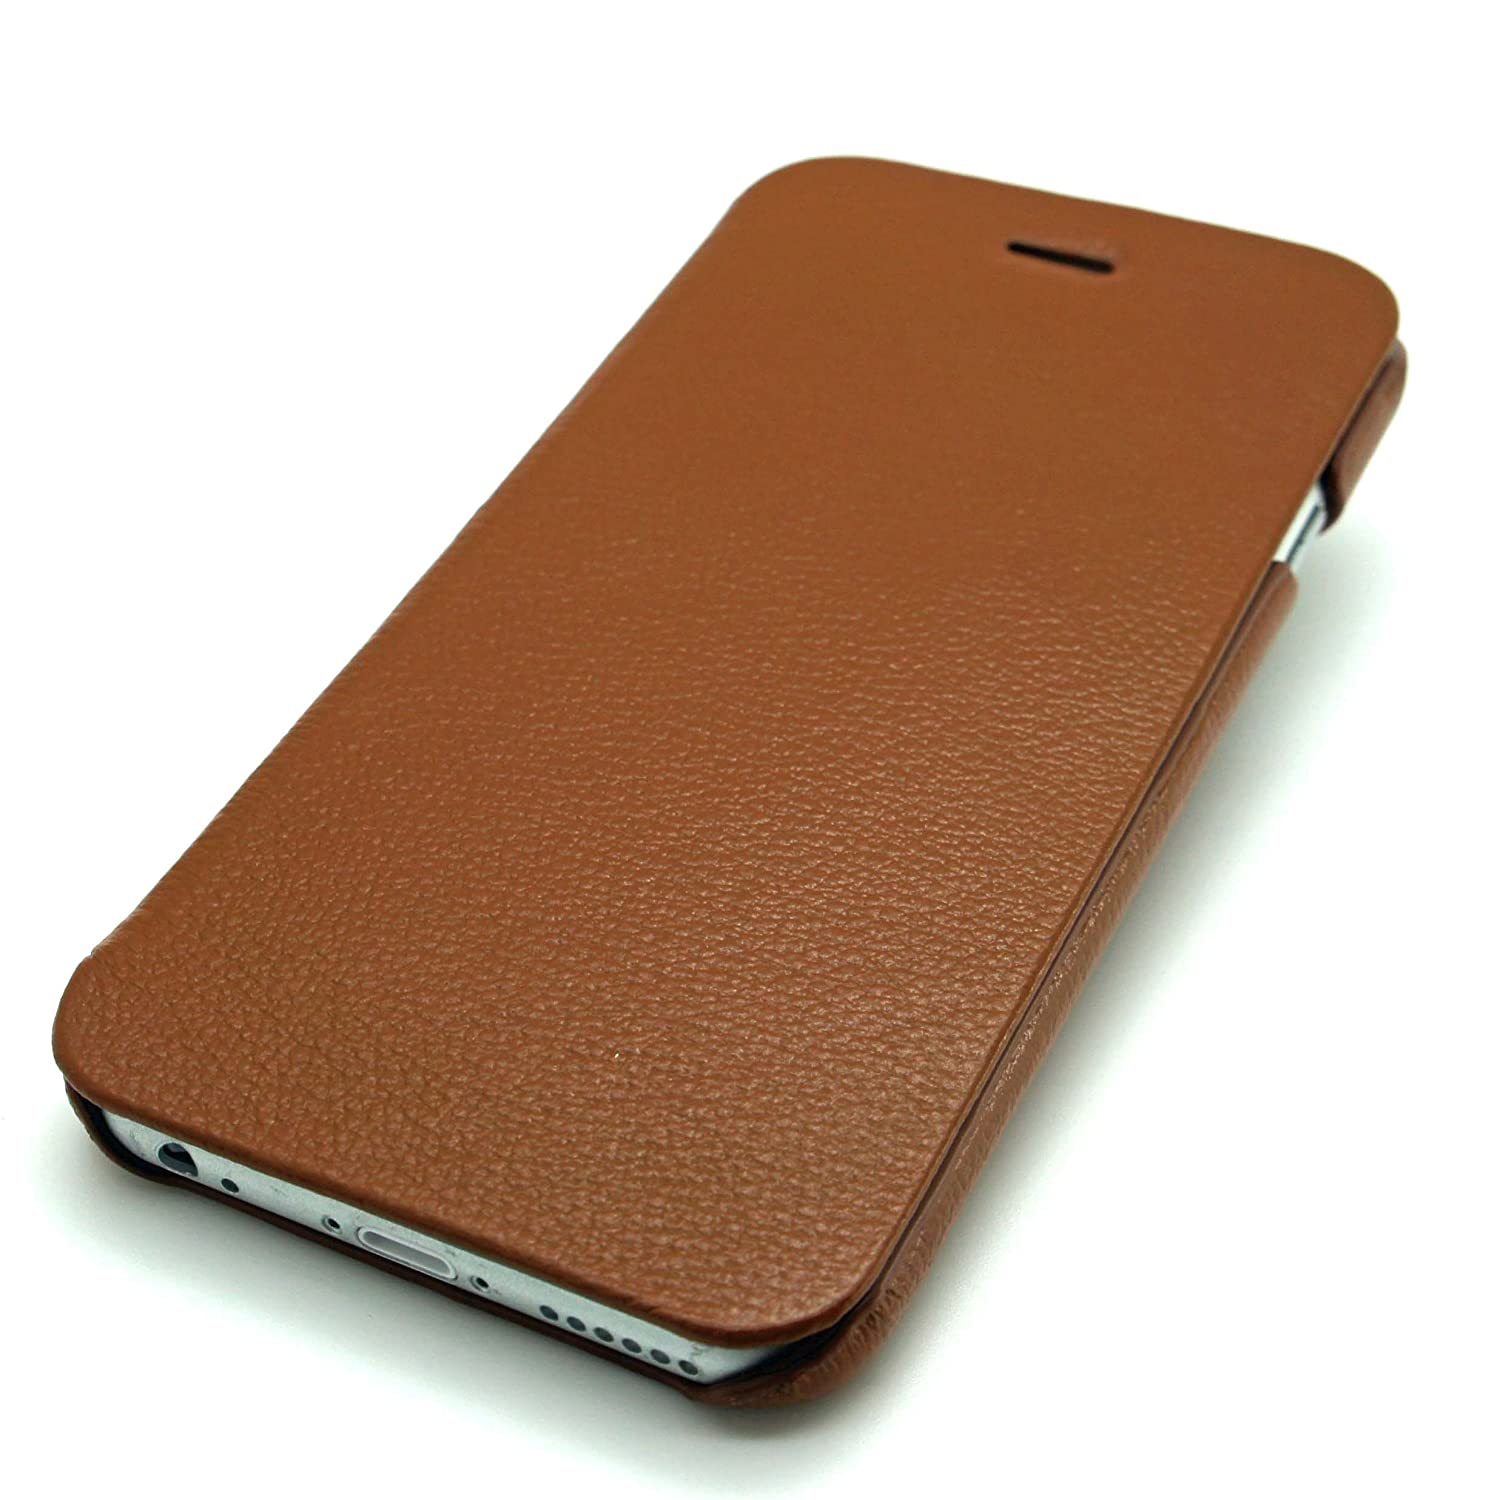 a6d17dd6bf05 Apple iPhone 6 6s case cover HOCO PREMIUM COLLECTION GENUINE LEATHER FOLDER  Wallet Book (BROWN)  Amazon.co.uk  Electronics